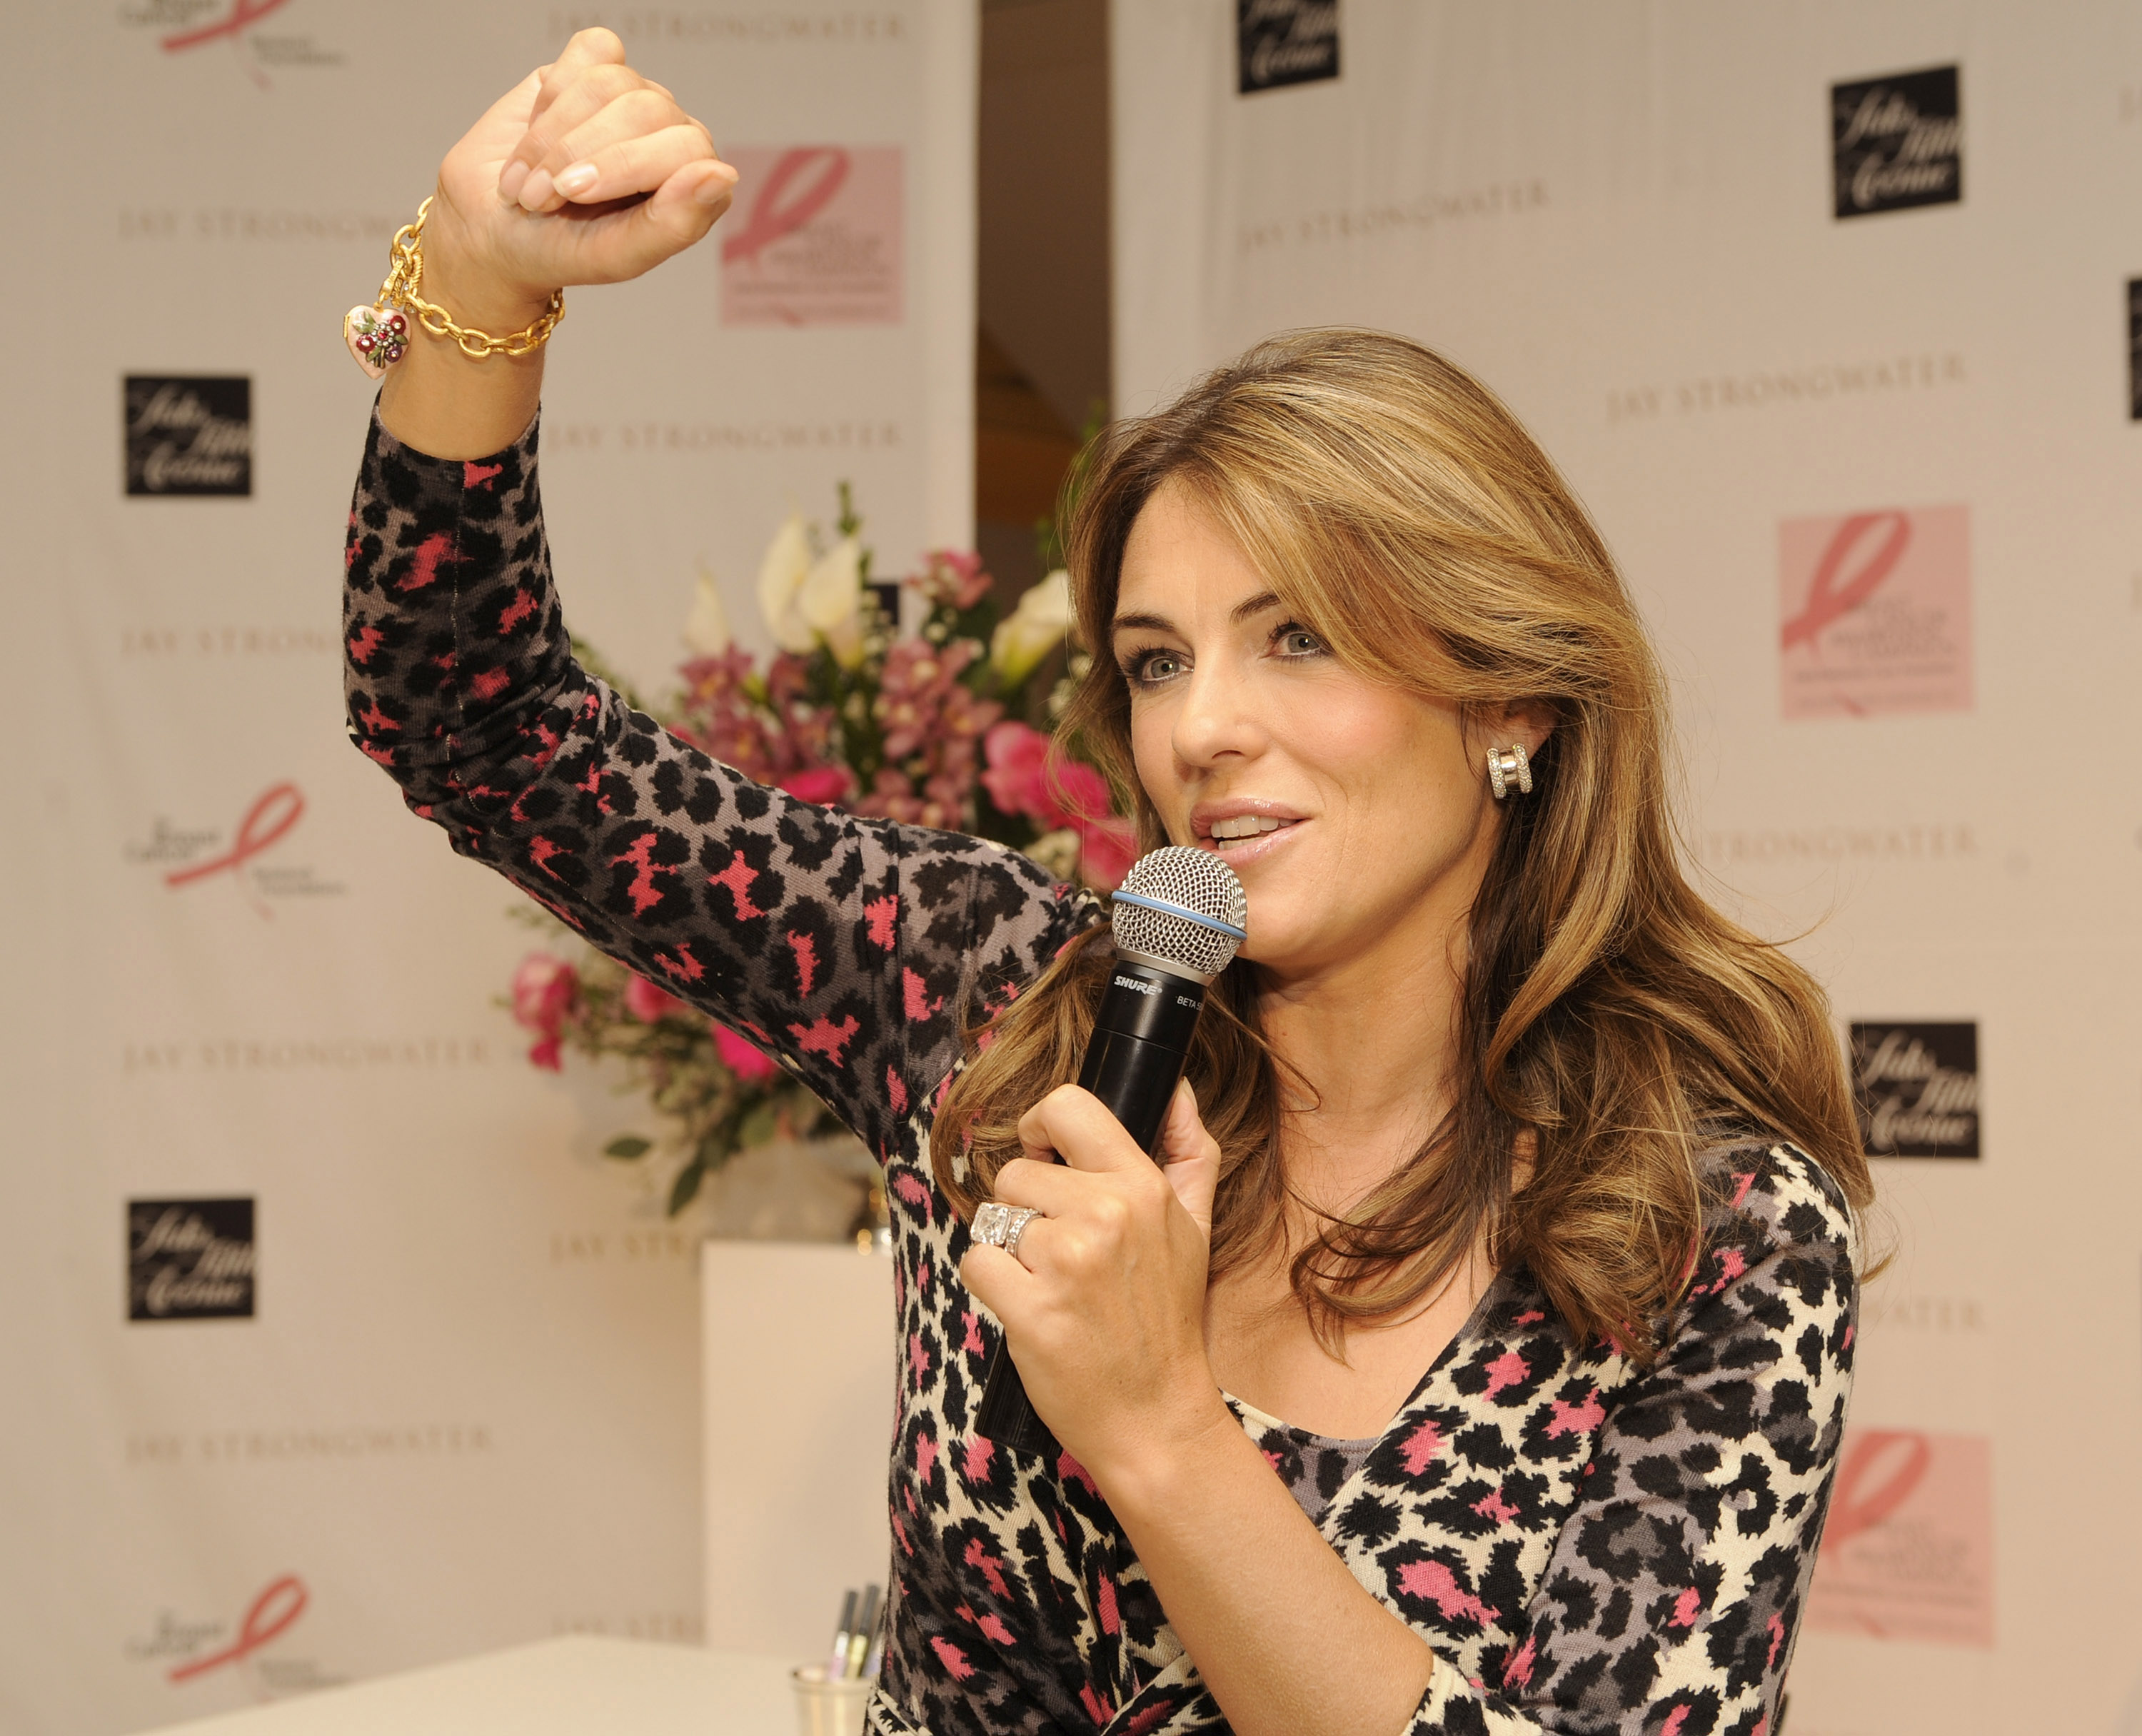 84700_Celebutopia-Elizabeth_Hurley-Celebration_of_Jay_Strongwater_limited_edition_pink_reflections_compact-06_122_580lo.jpg